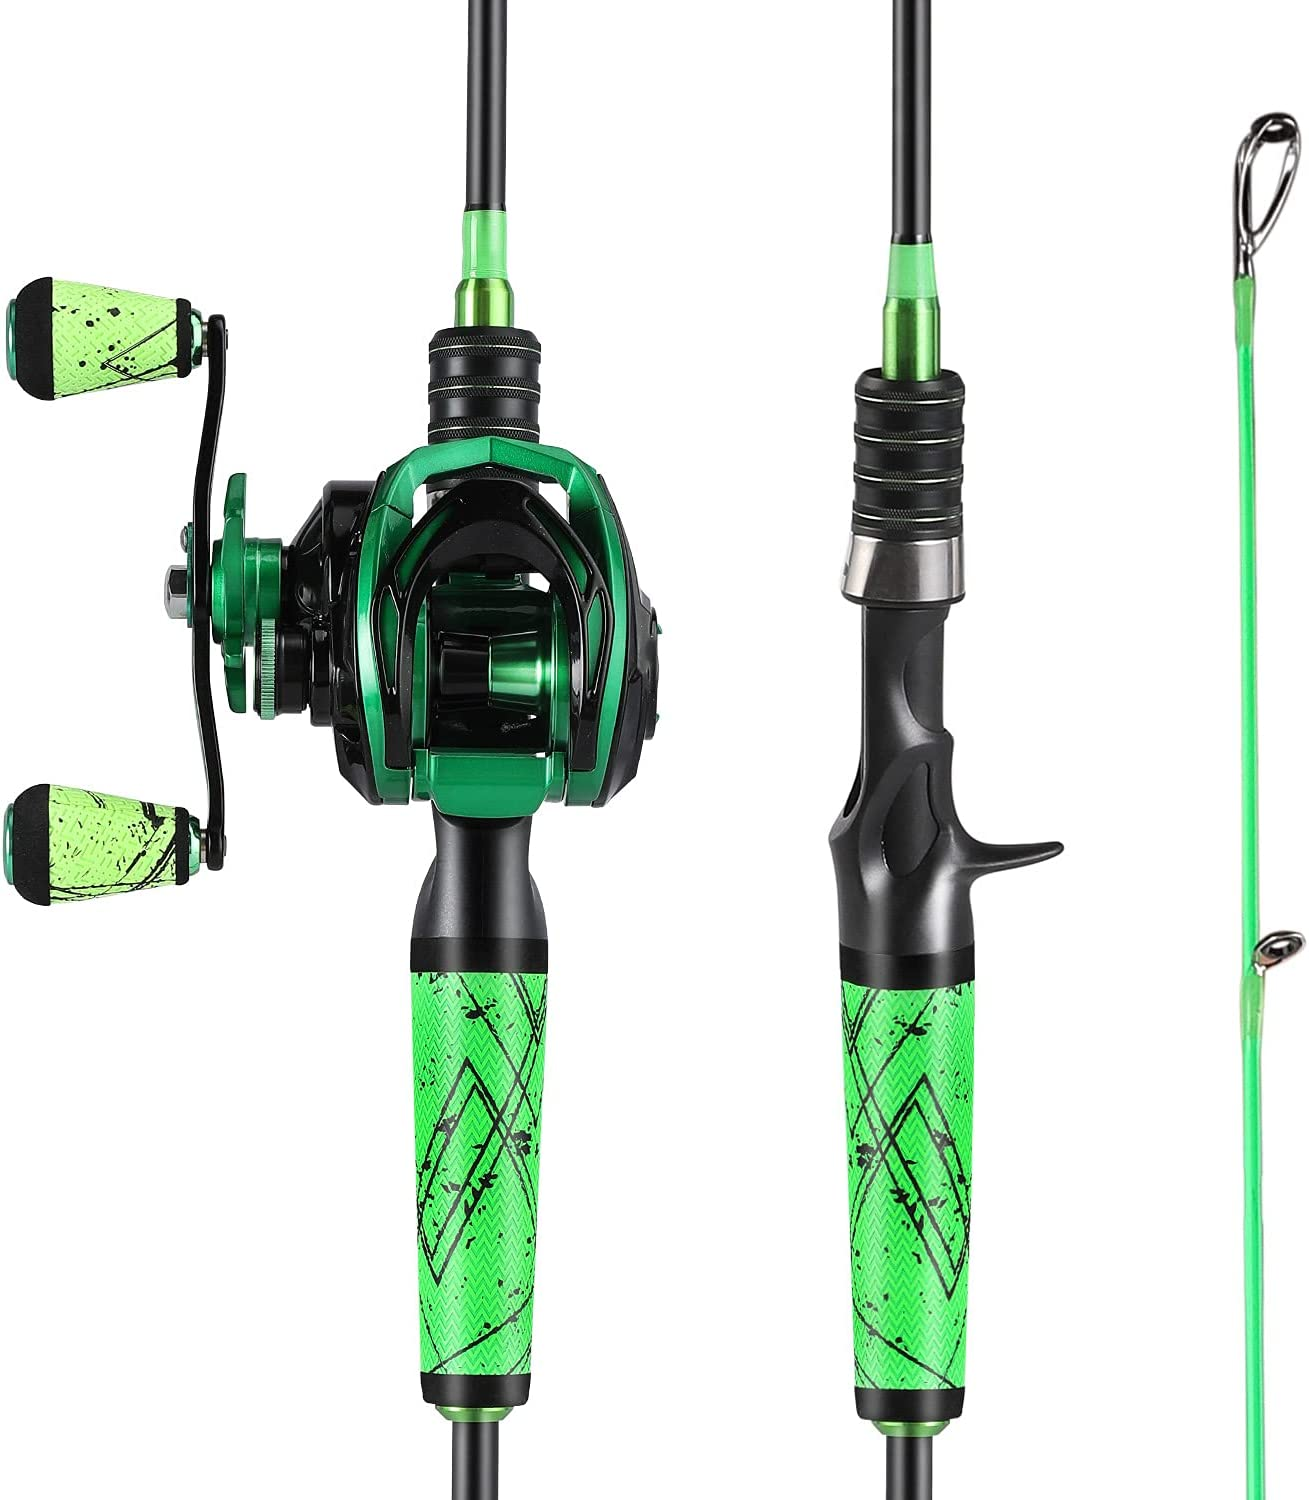 One Bass Fishing Rod and Supe Reel Baitcasting Combo with Manufacturer regenerated product Outlet sale feature